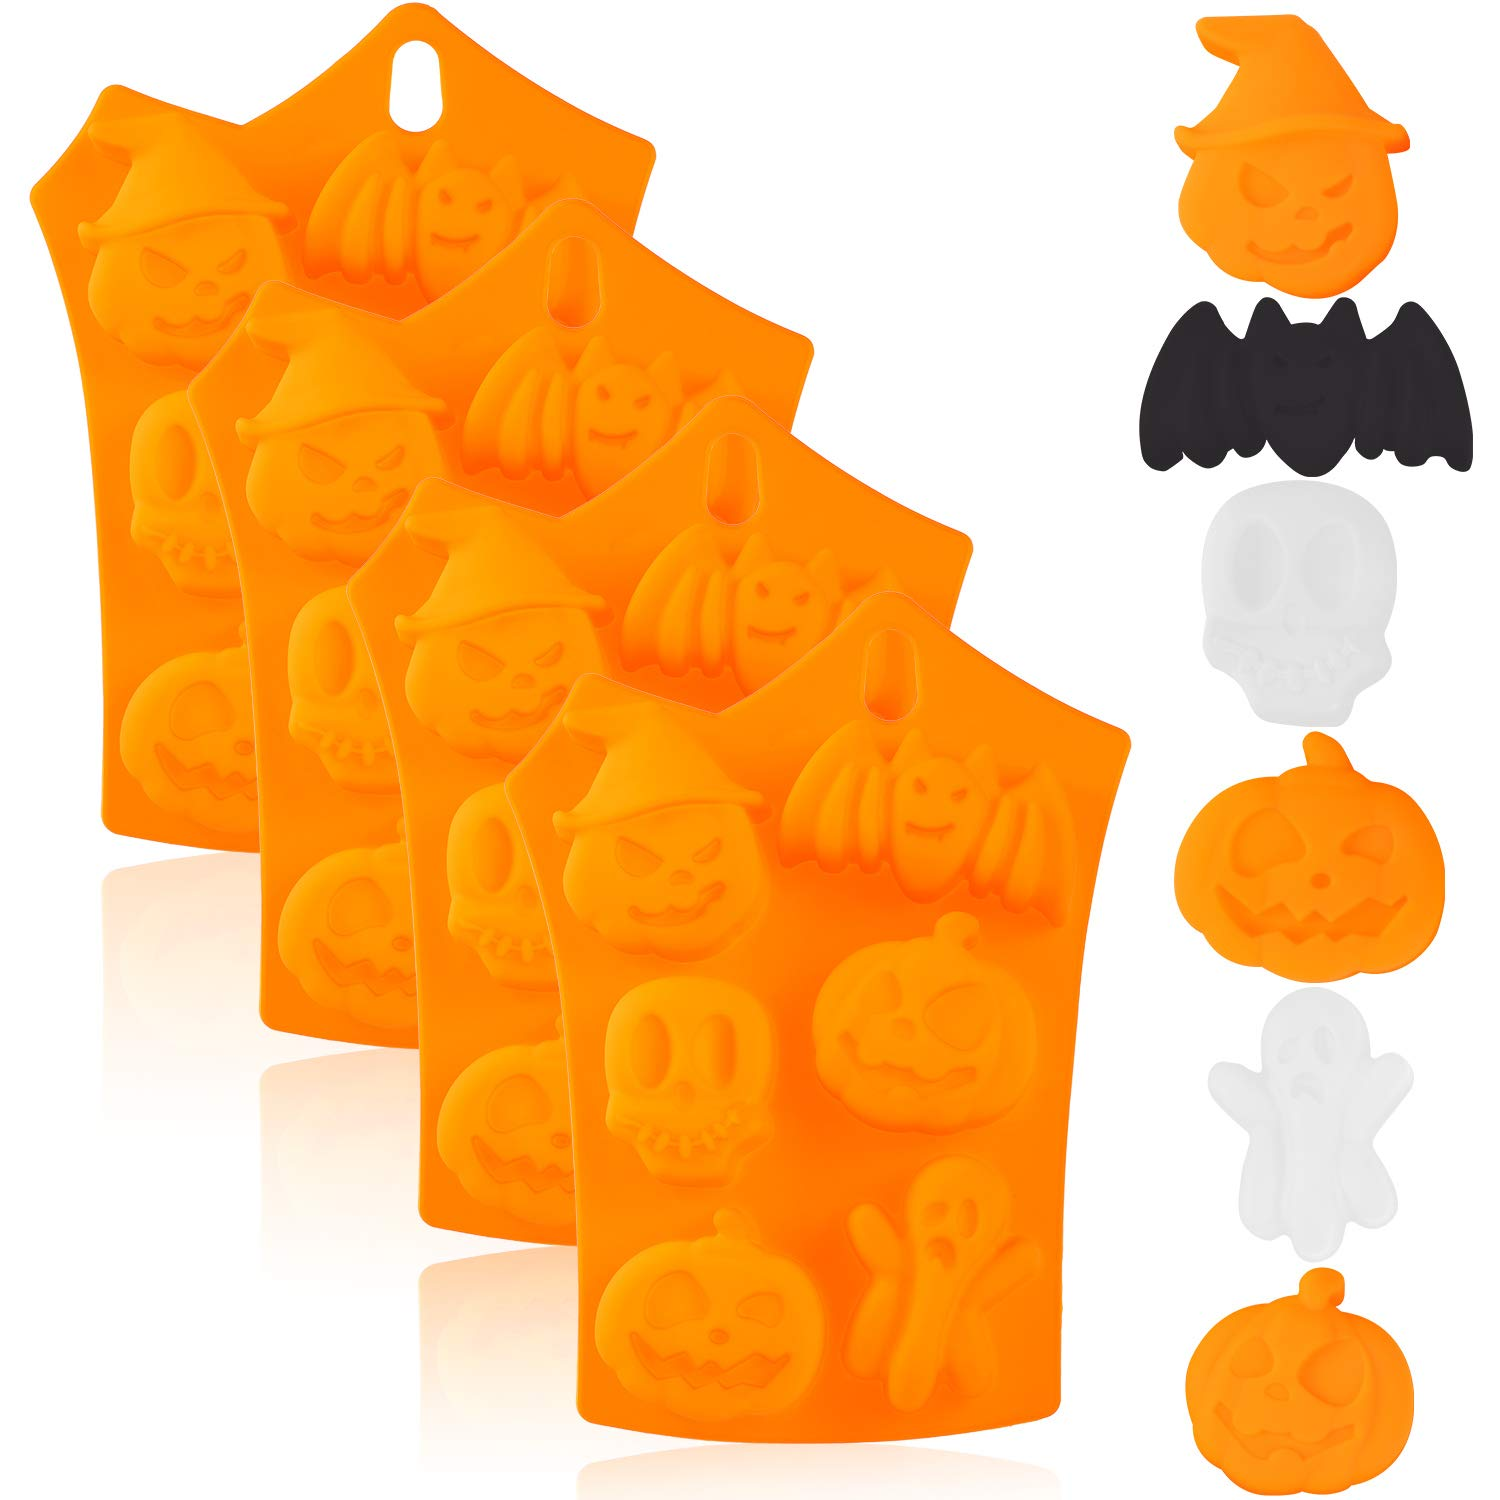 4 Pieces Halloween Silicone Baking Molds Chocolate Cookie Candy Ice Cube Molds with Pumpkin Bat Skull Ghost Shape for Kitchen DIY Baking Tools Supplies by Jovitec